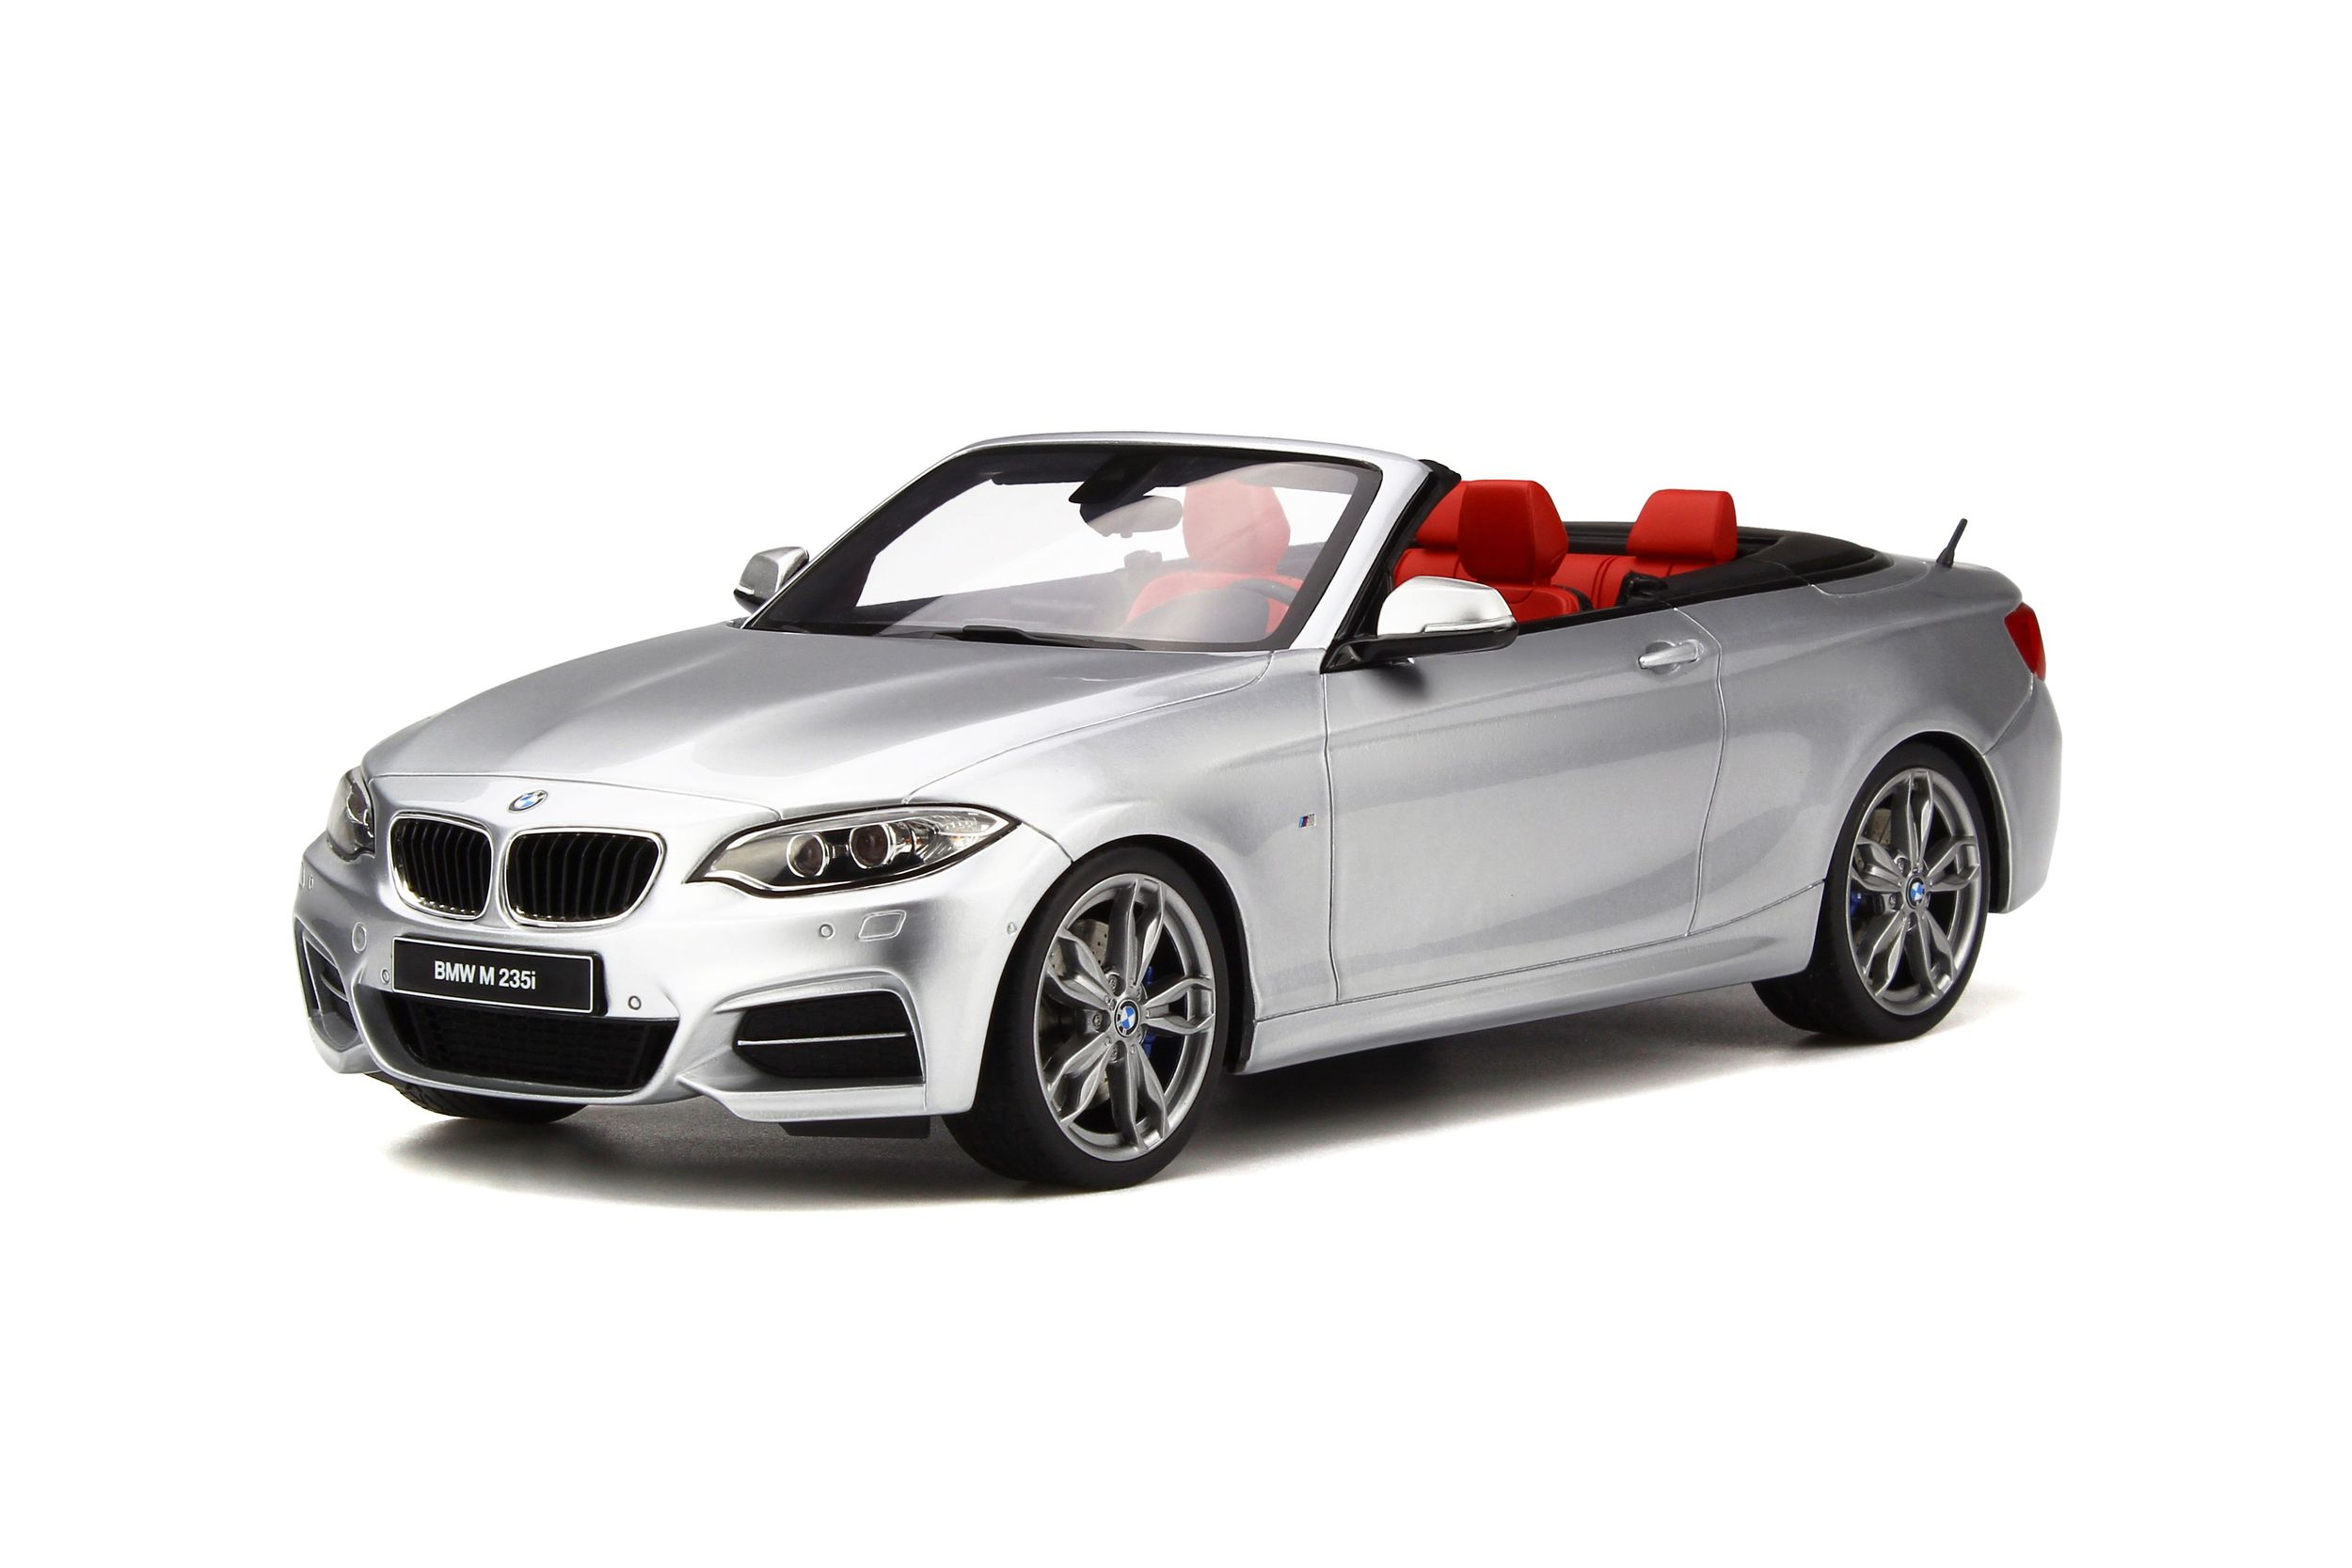 bmw m235i cabrio model car collection gt spirit. Black Bedroom Furniture Sets. Home Design Ideas